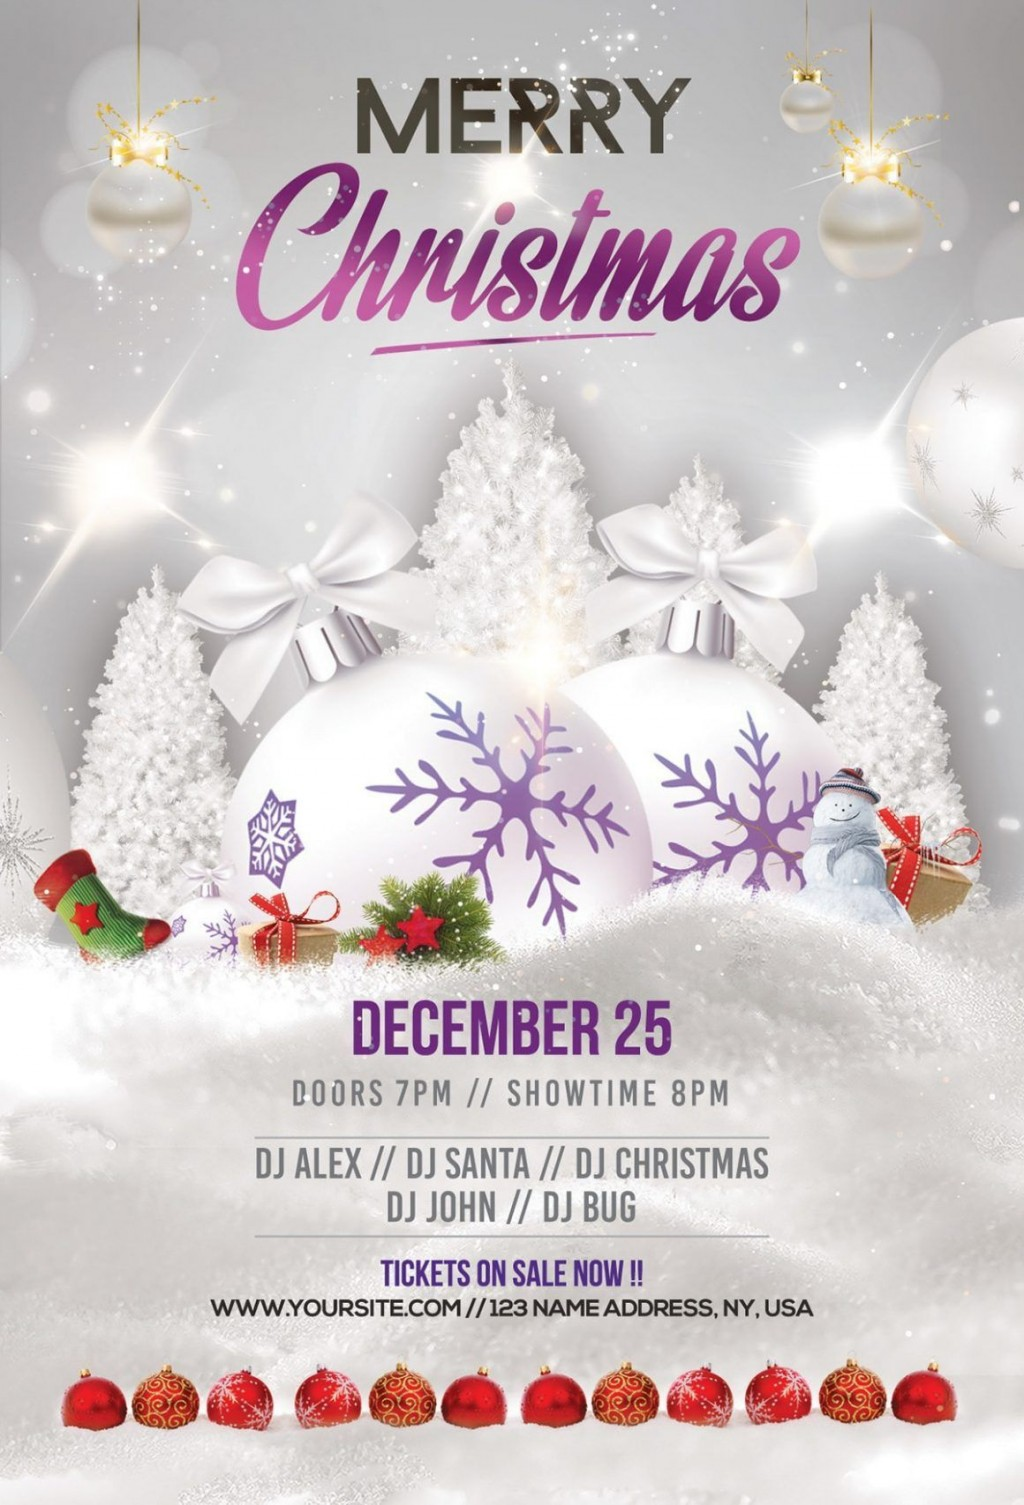 006 Unbelievable Christma Flyer Template Free Concept  Party Invitation Psd DownloadLarge